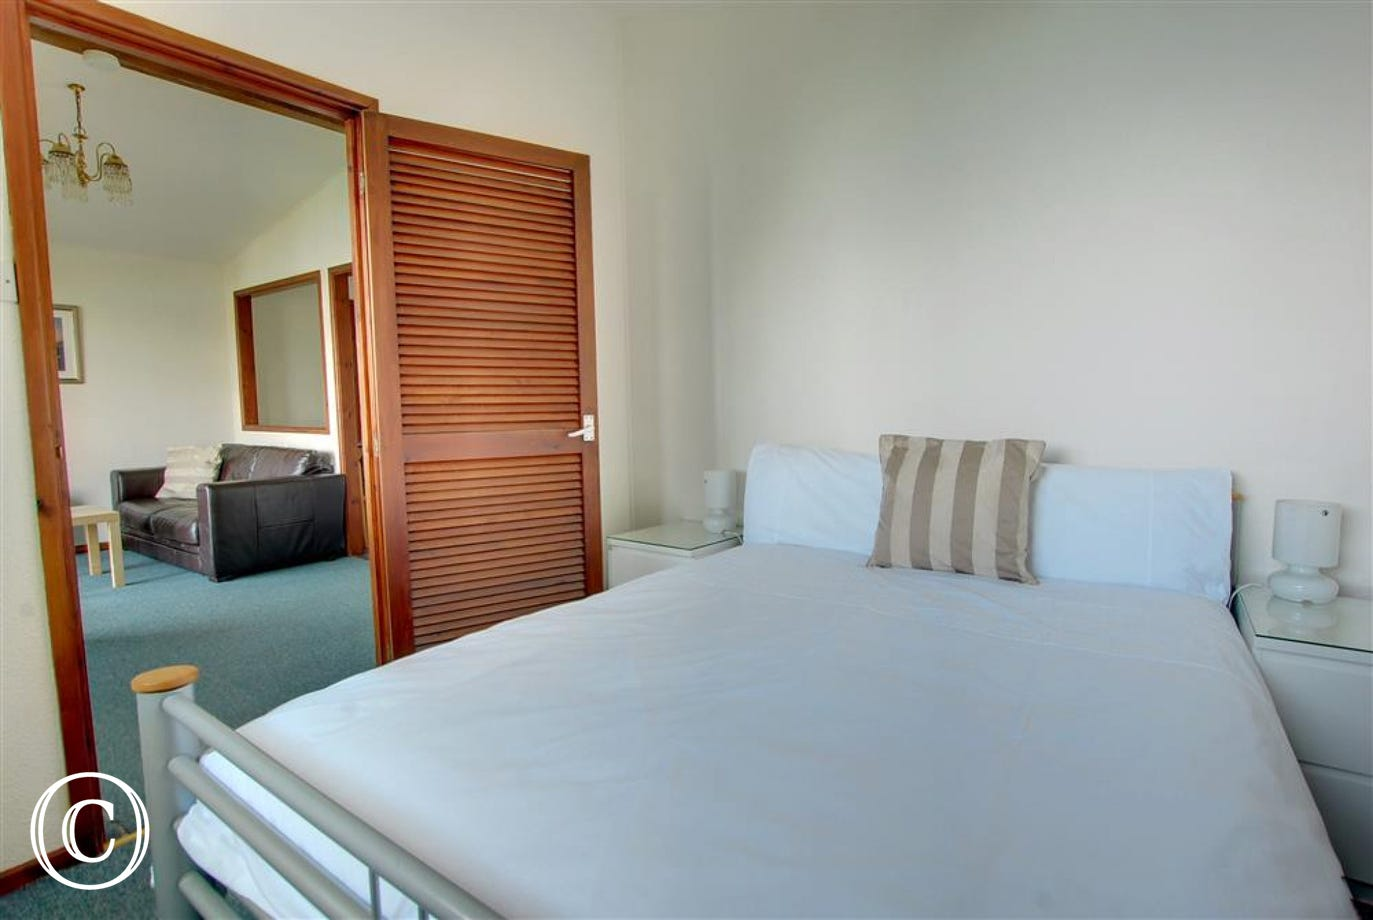 Simply furnished compact double bedroom